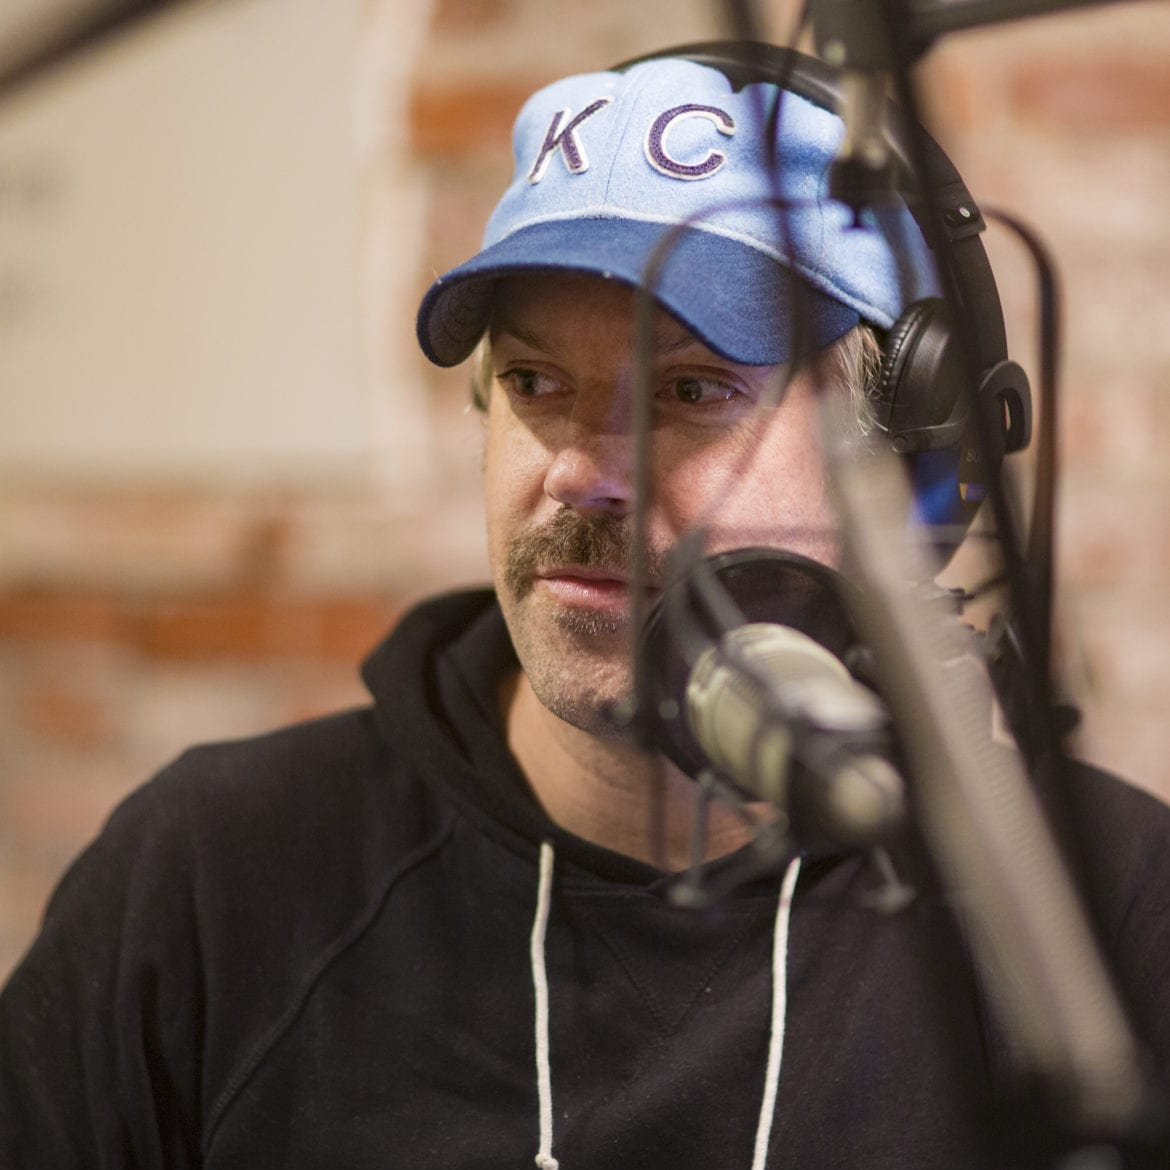 Jason Sudeikis in a KC Bladwin hat